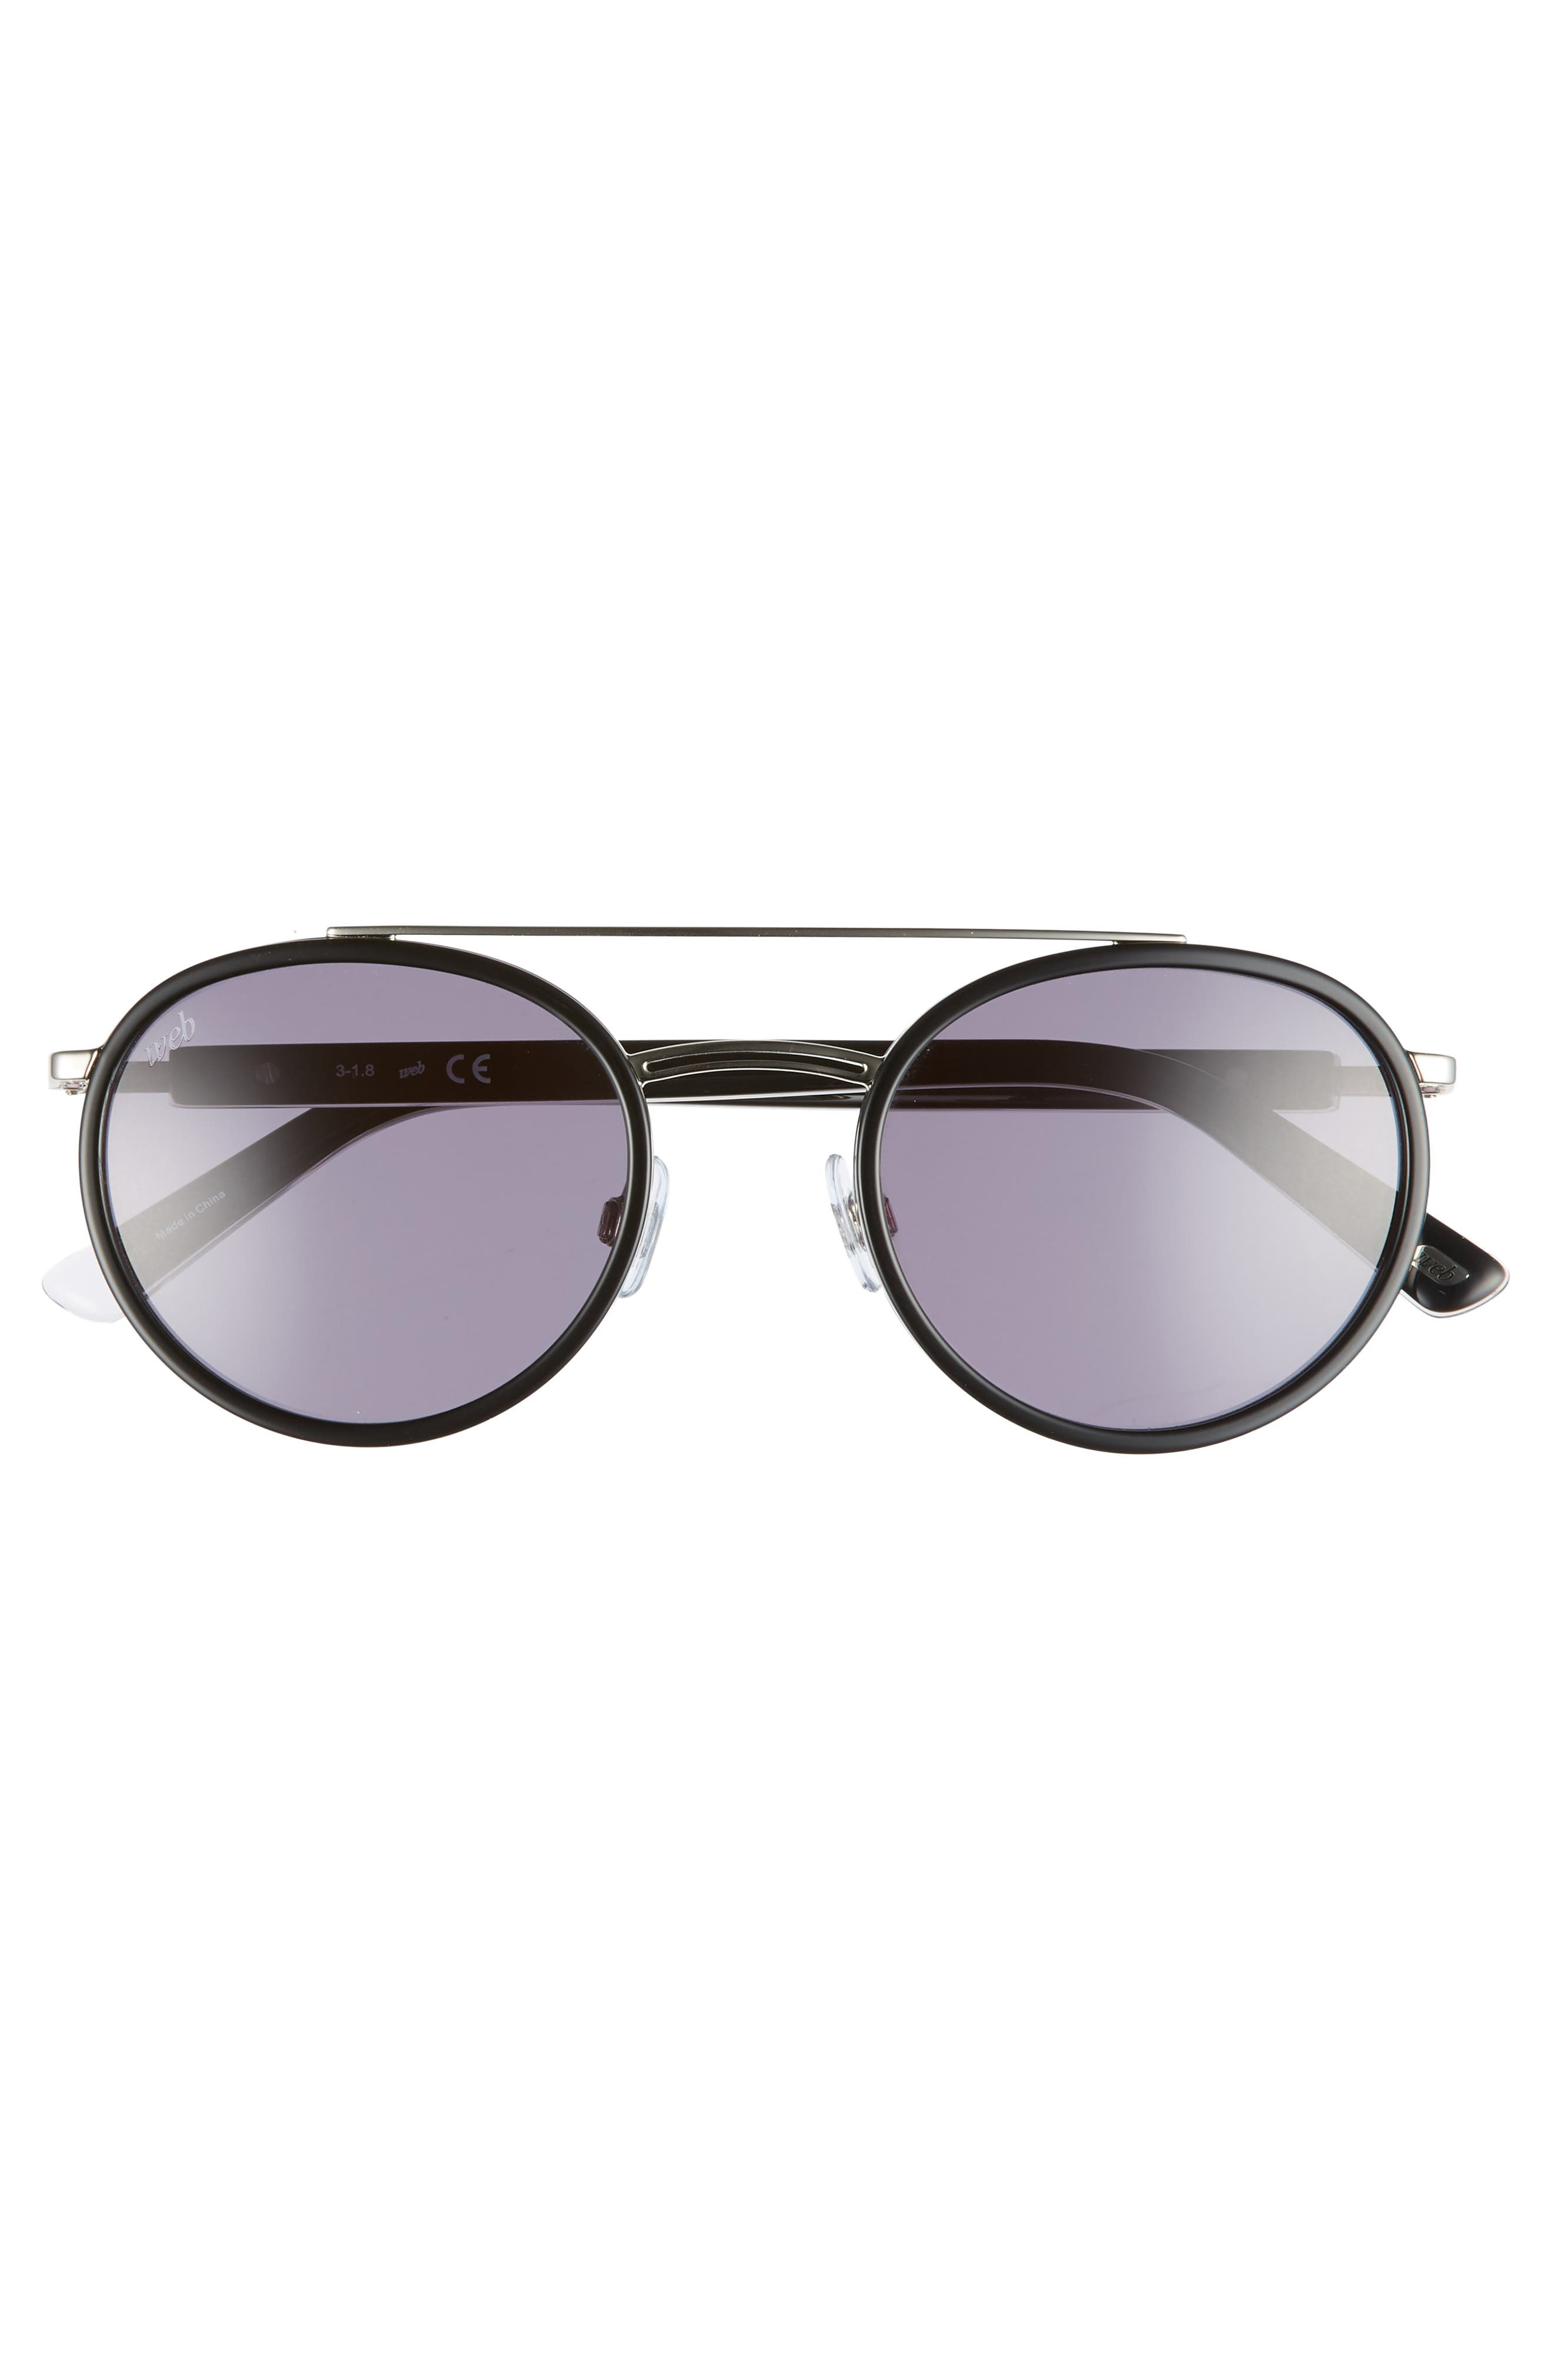 52mm Aviator Sunglasses,                             Alternate thumbnail 3, color,                             SHINY BLACK/ SMOKE